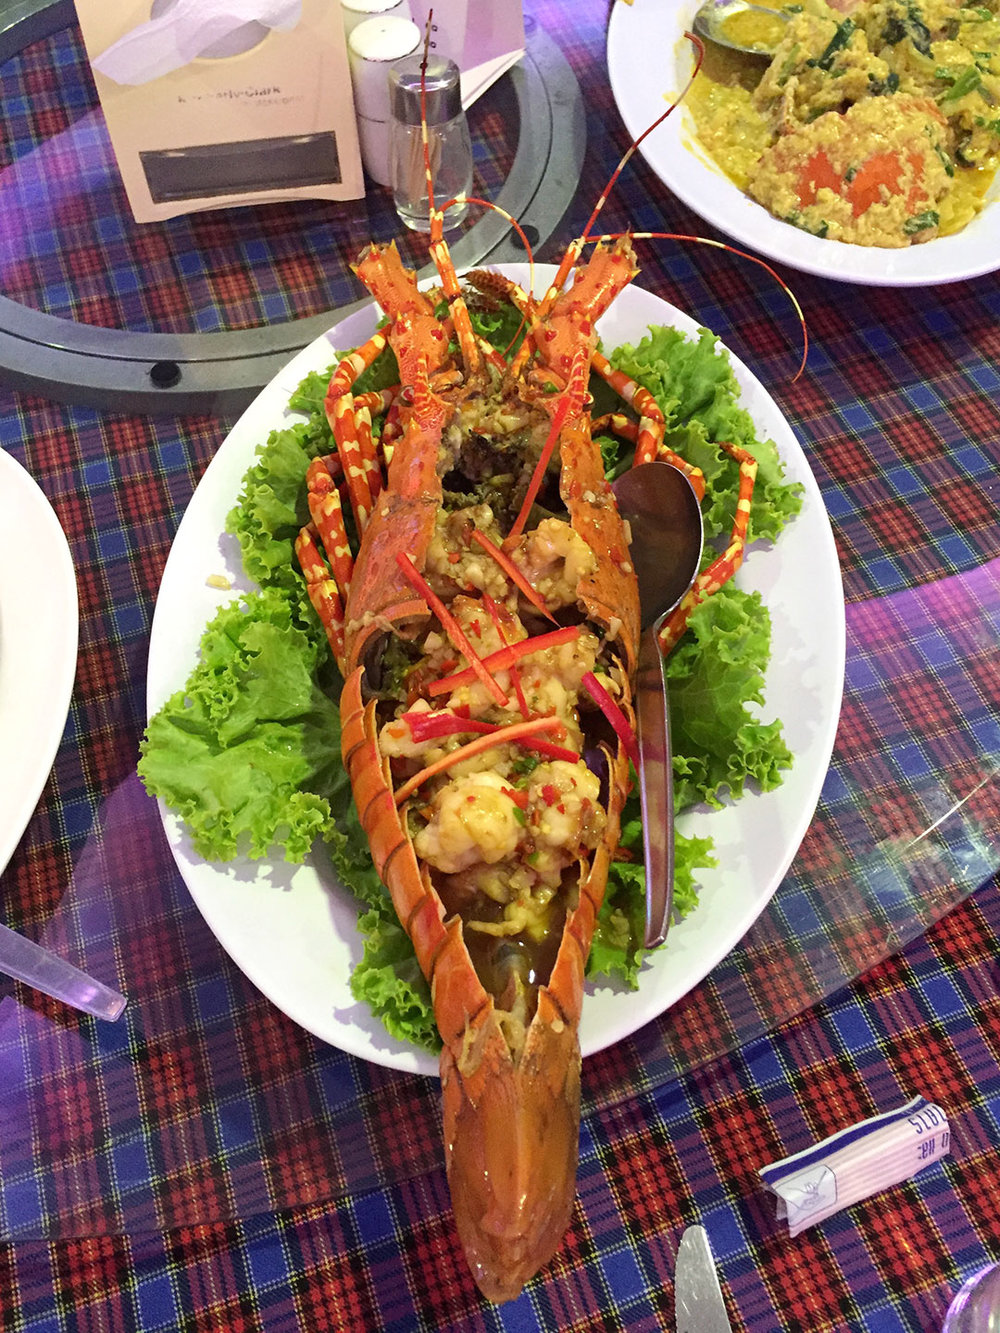 SEAFOOD MARKET & RESTAURANT:  If you love fresh seafood,   Seafood Market & Restaurant   is the place to go. You pick your seafood and how you'd like it cooked. Our favorites were the lobster and the curry crab!